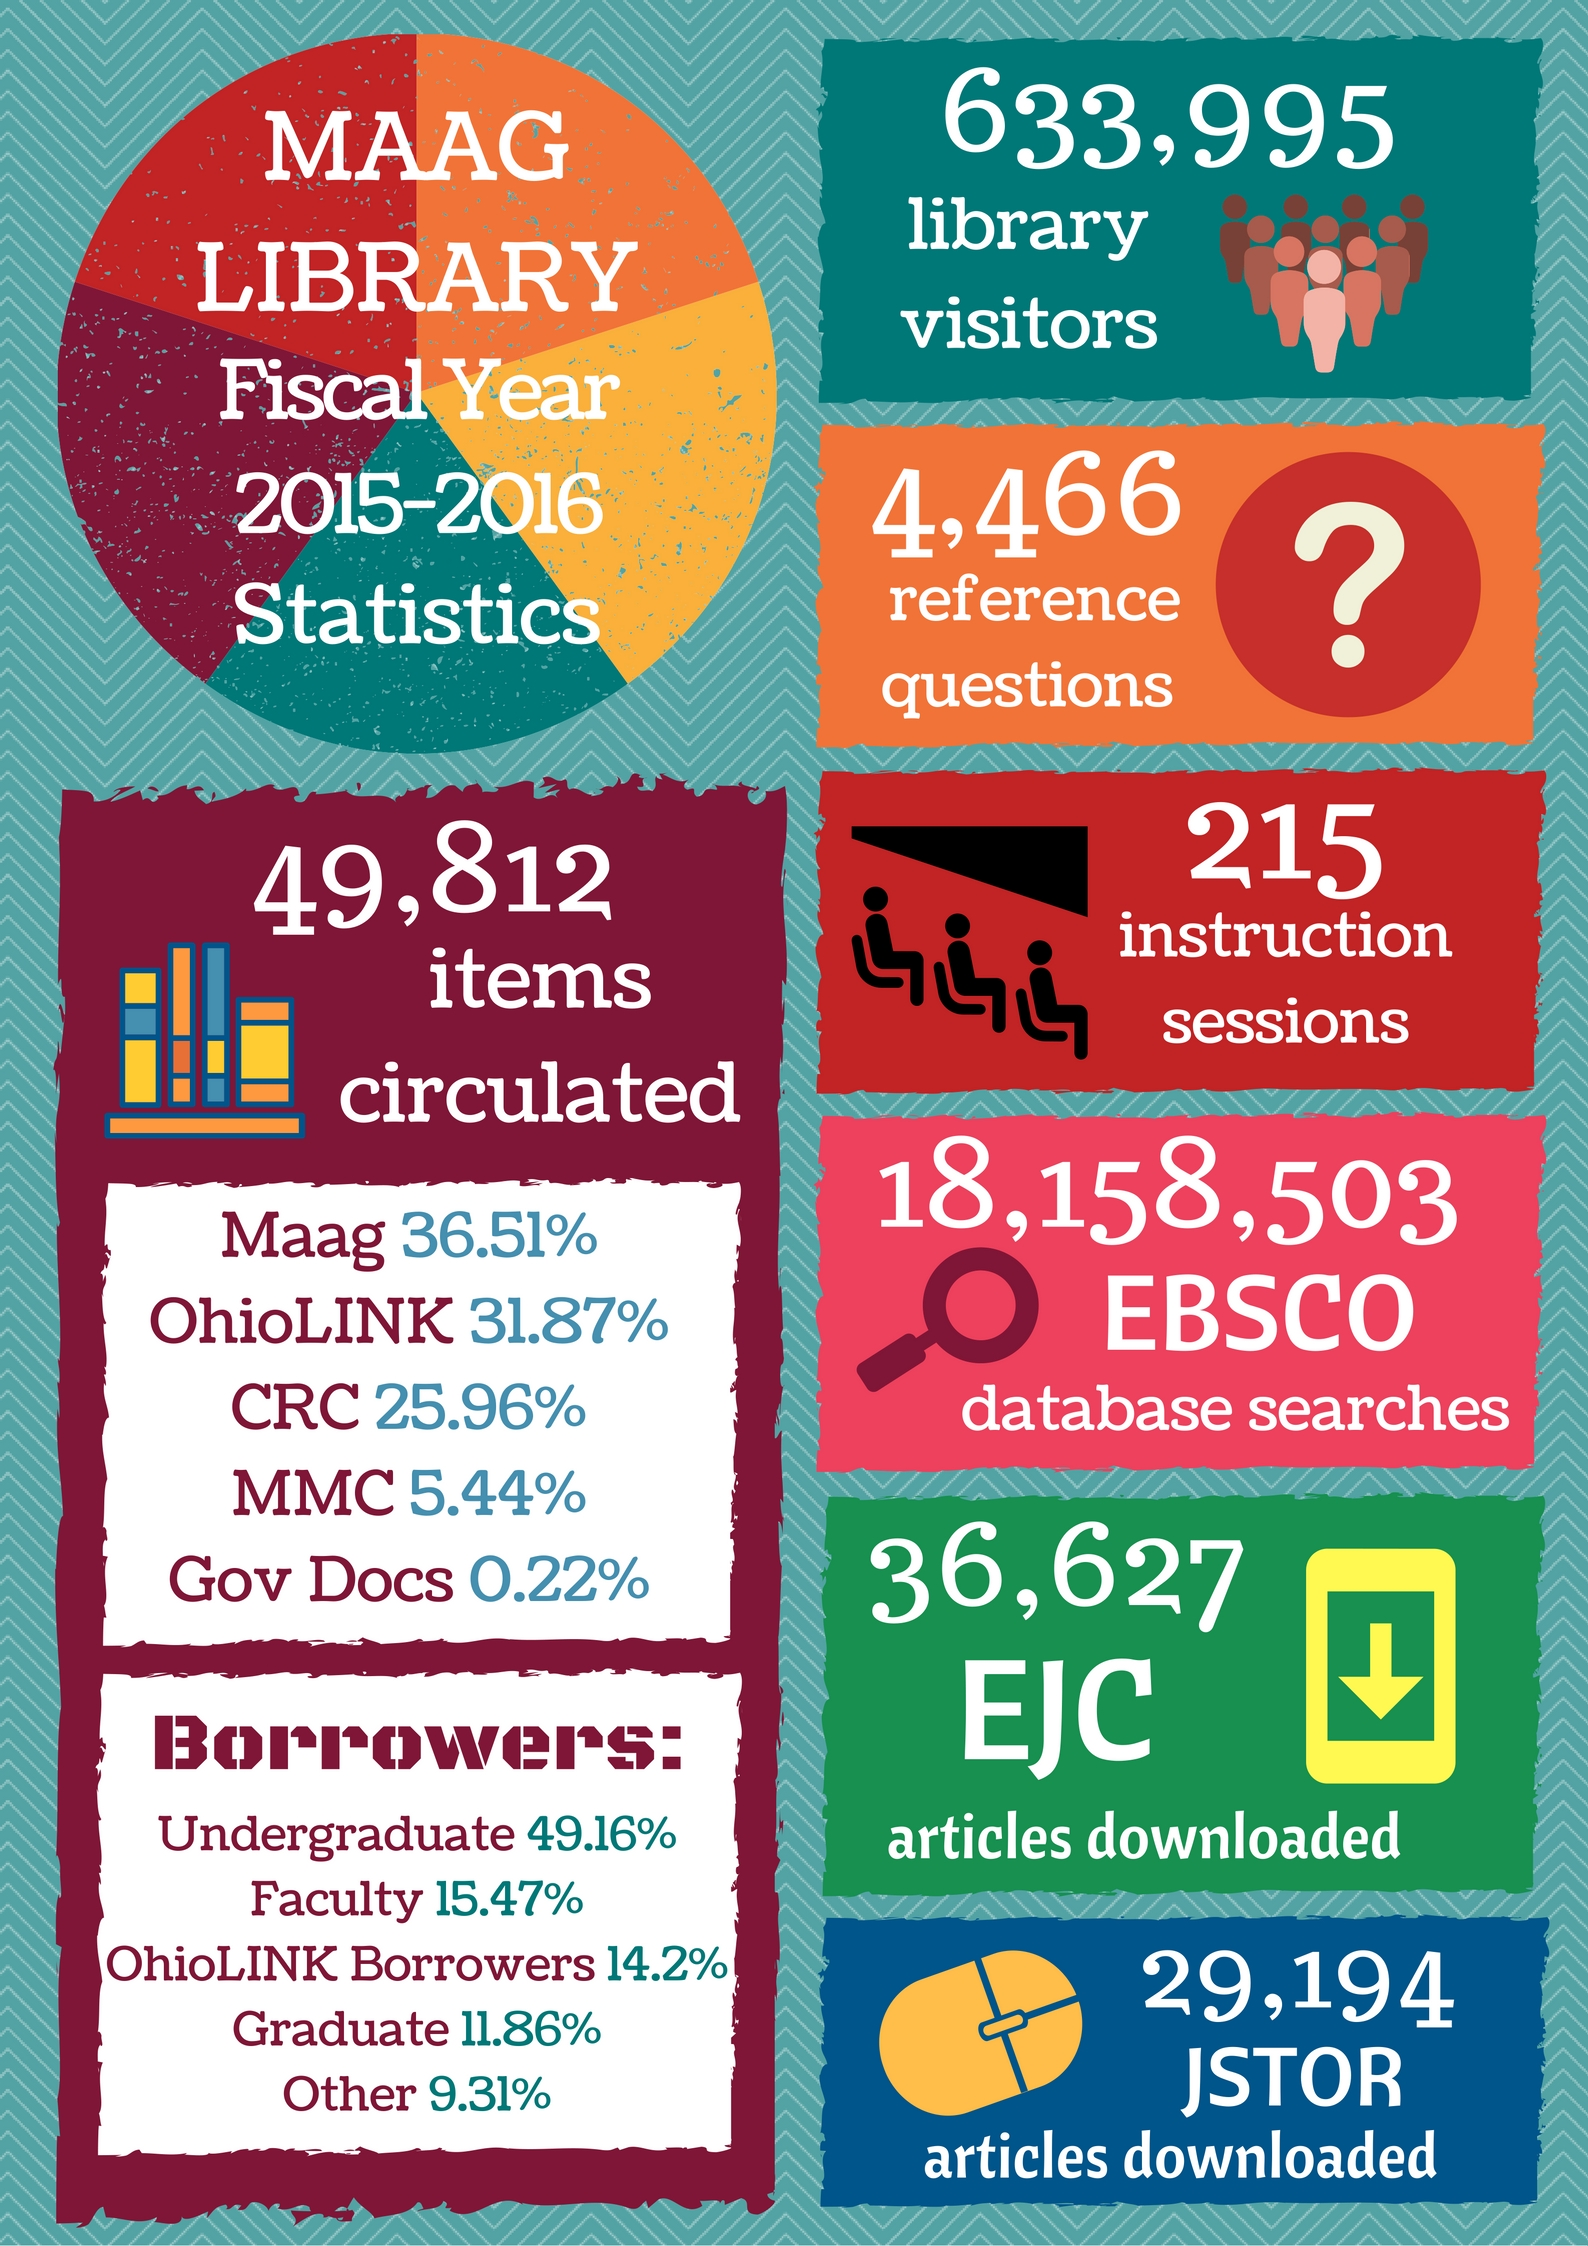 Maag Library Fiscal Year 2015-2016 Statistics Cover Page - Content available in PDF link above.